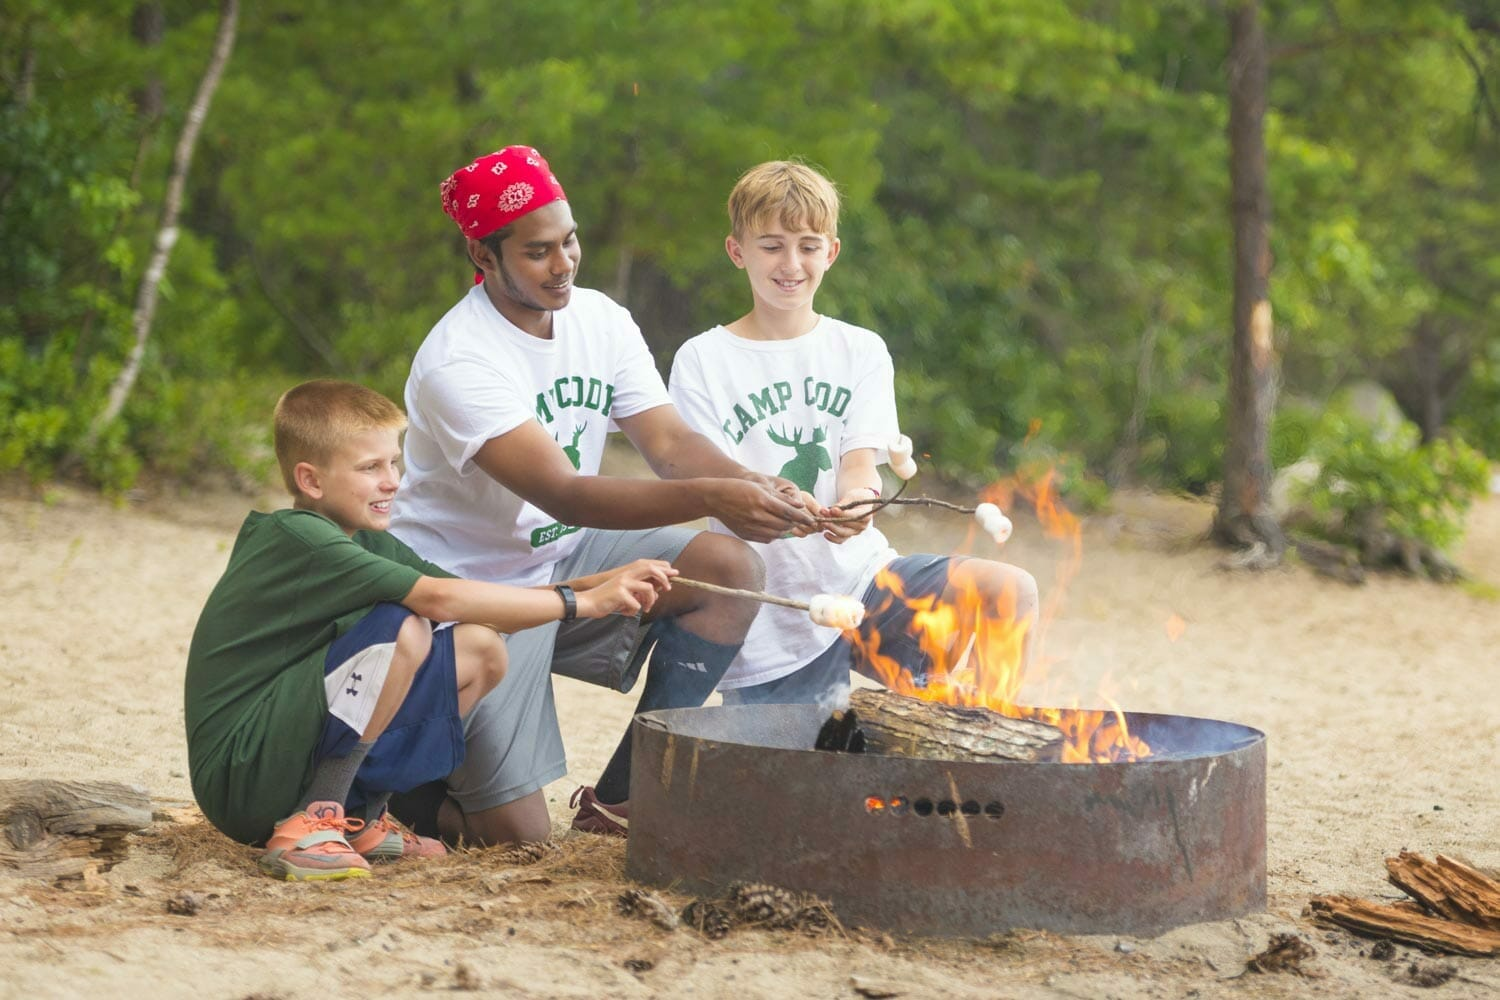 Boys building a campfire at summer camp in America